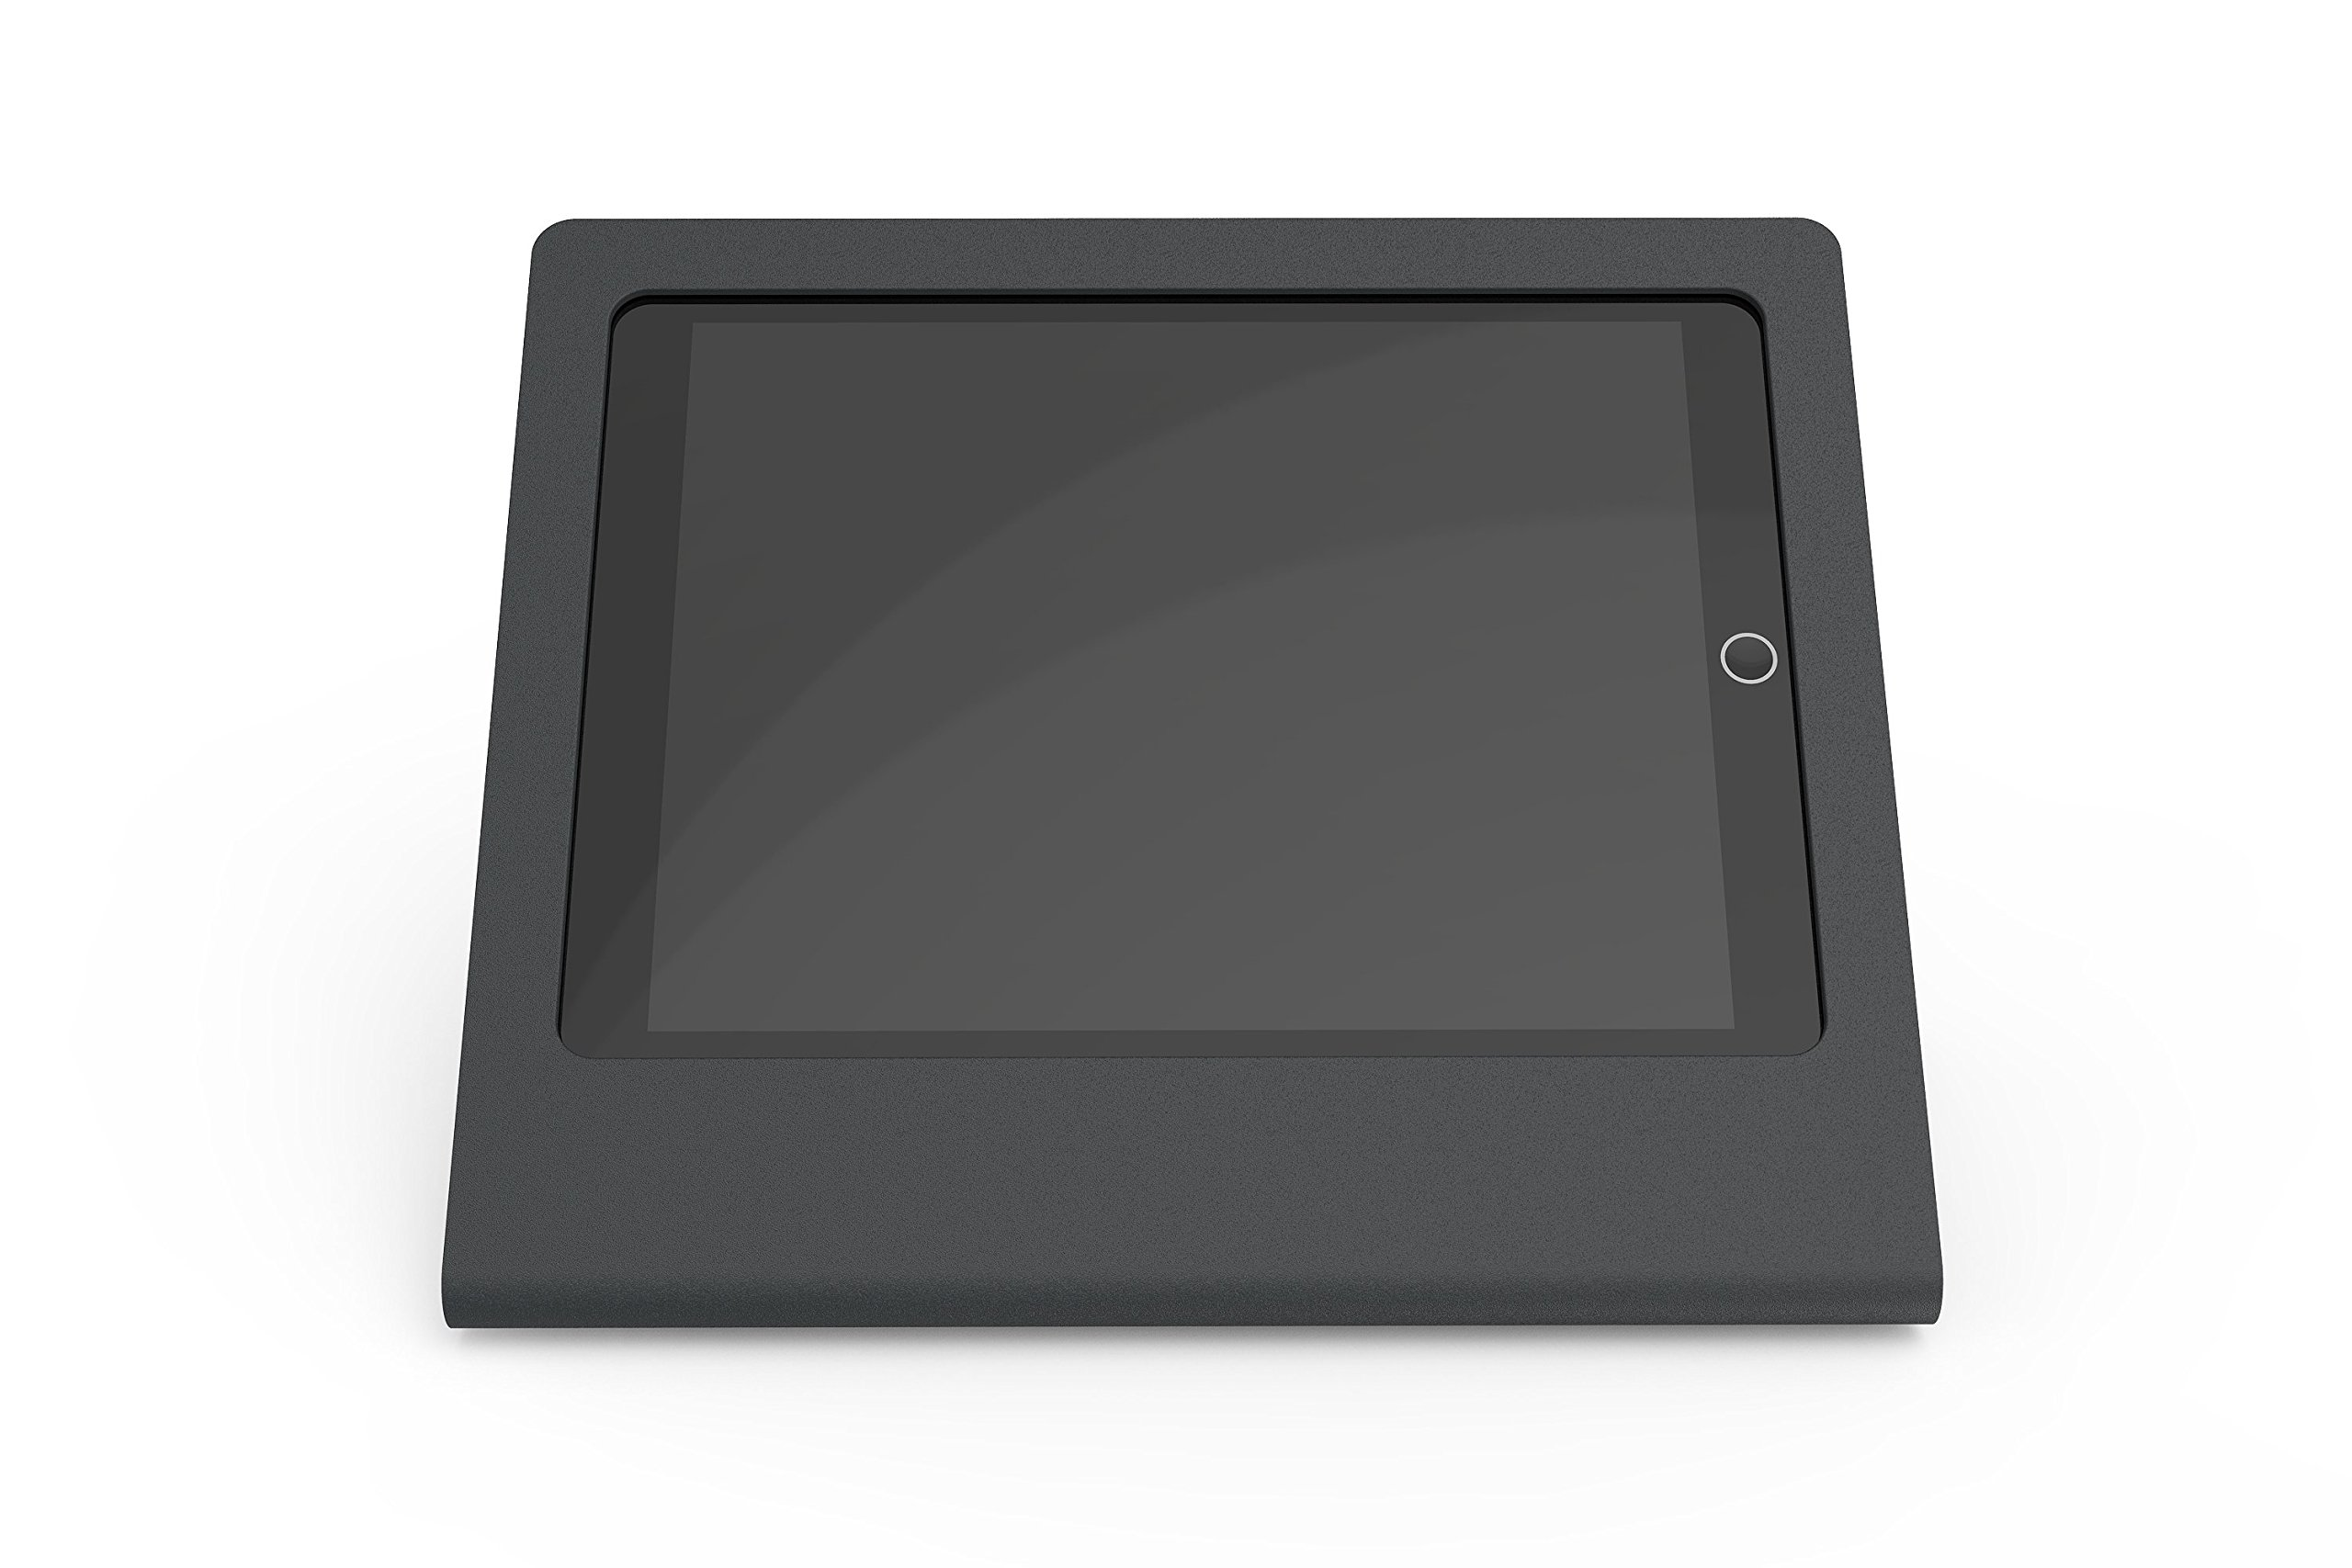 Heckler Design mPOS Checkout Stand for iPad Air with Optional iDynamo 5 Support (Black/Grey) by Heckler Design (Image #8)